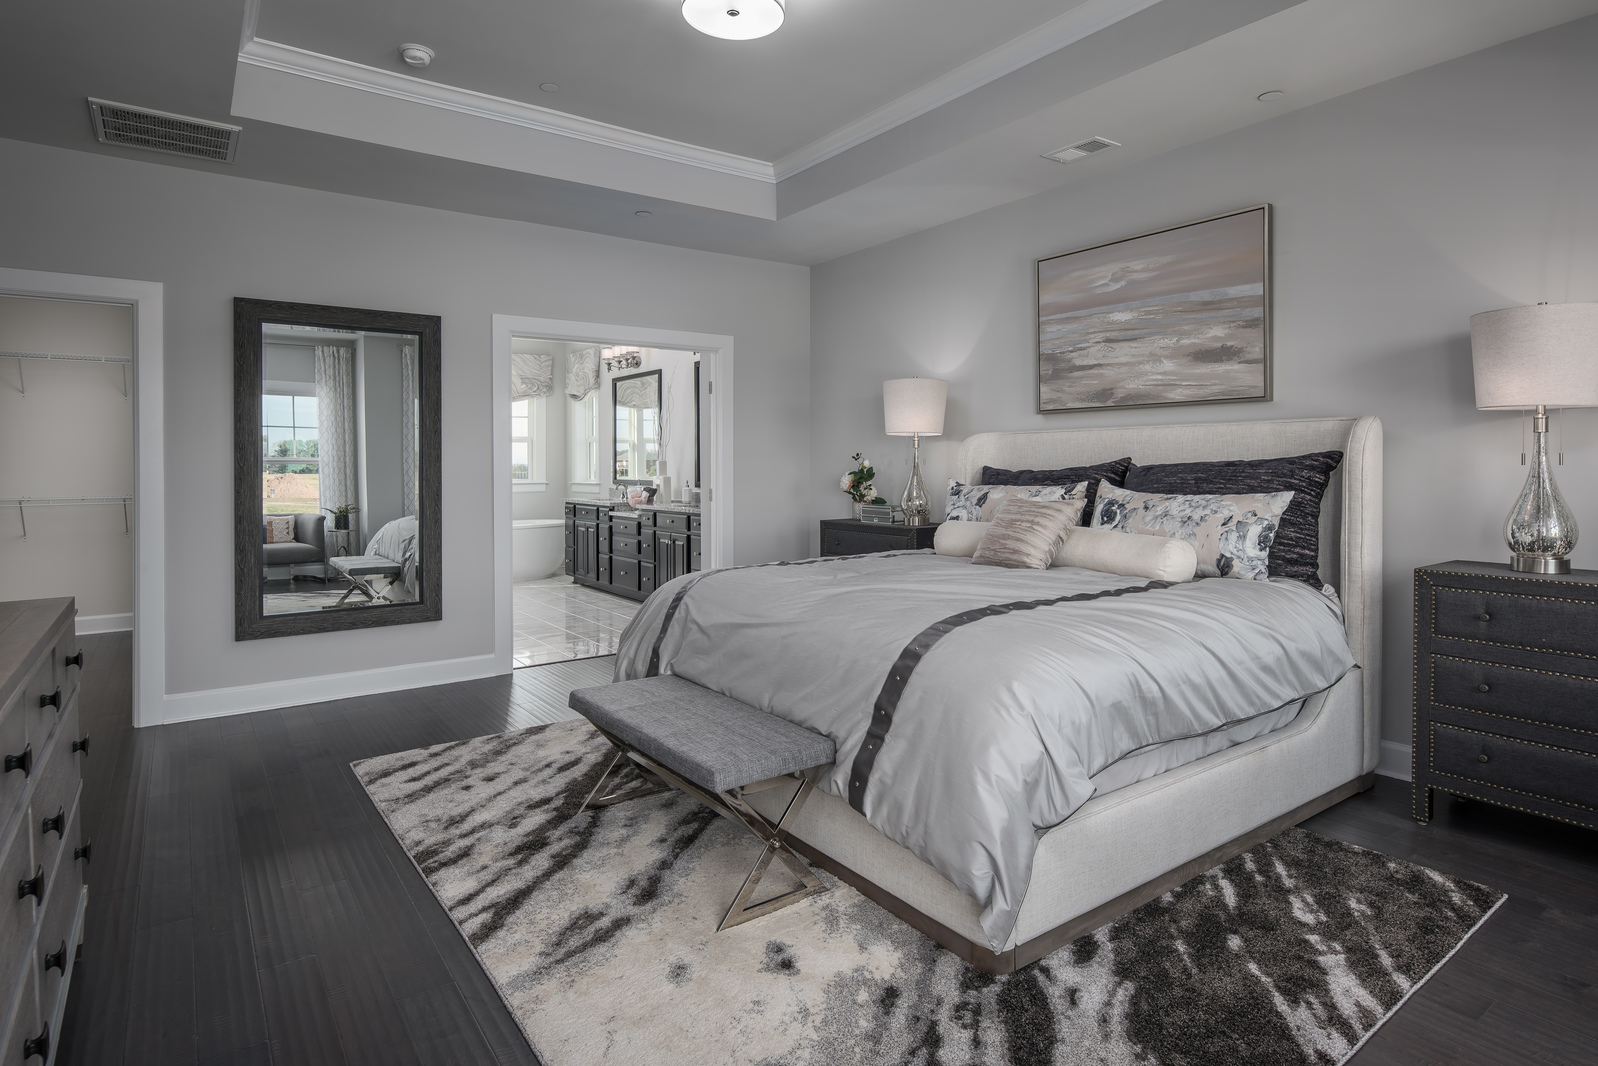 With plenty of space for a King bed, dual closets, and tray ceiling, even oversized furniture feels right at home.